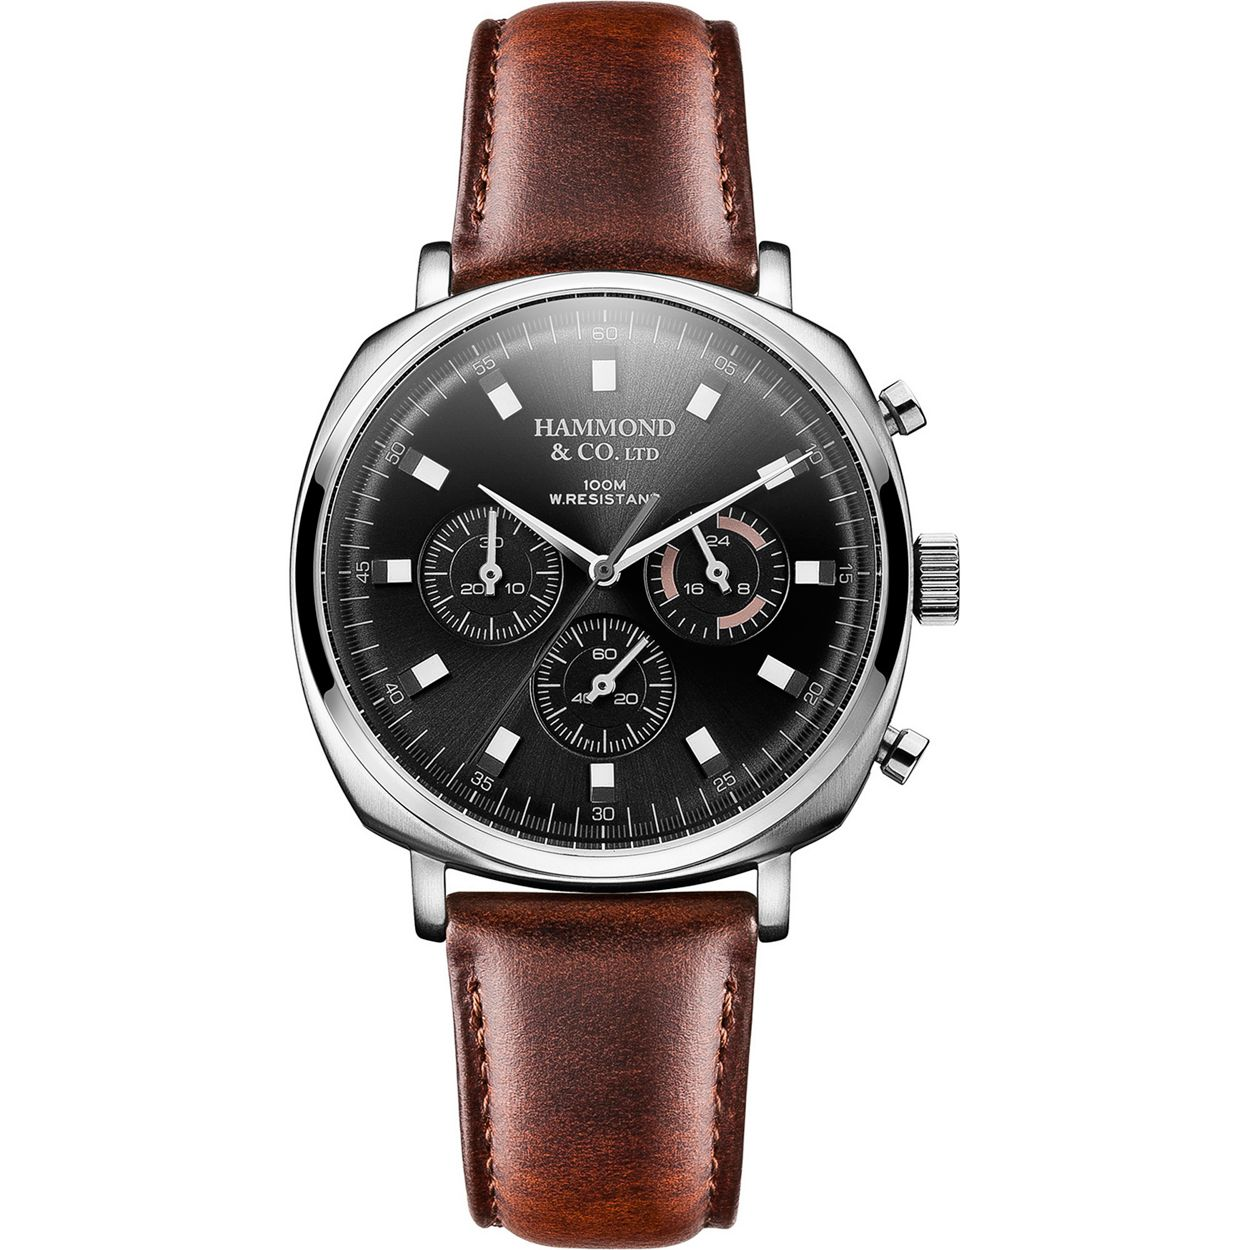 Hammond & Co. by Patrick Grant Men's square chronograph watch with brown leather strap